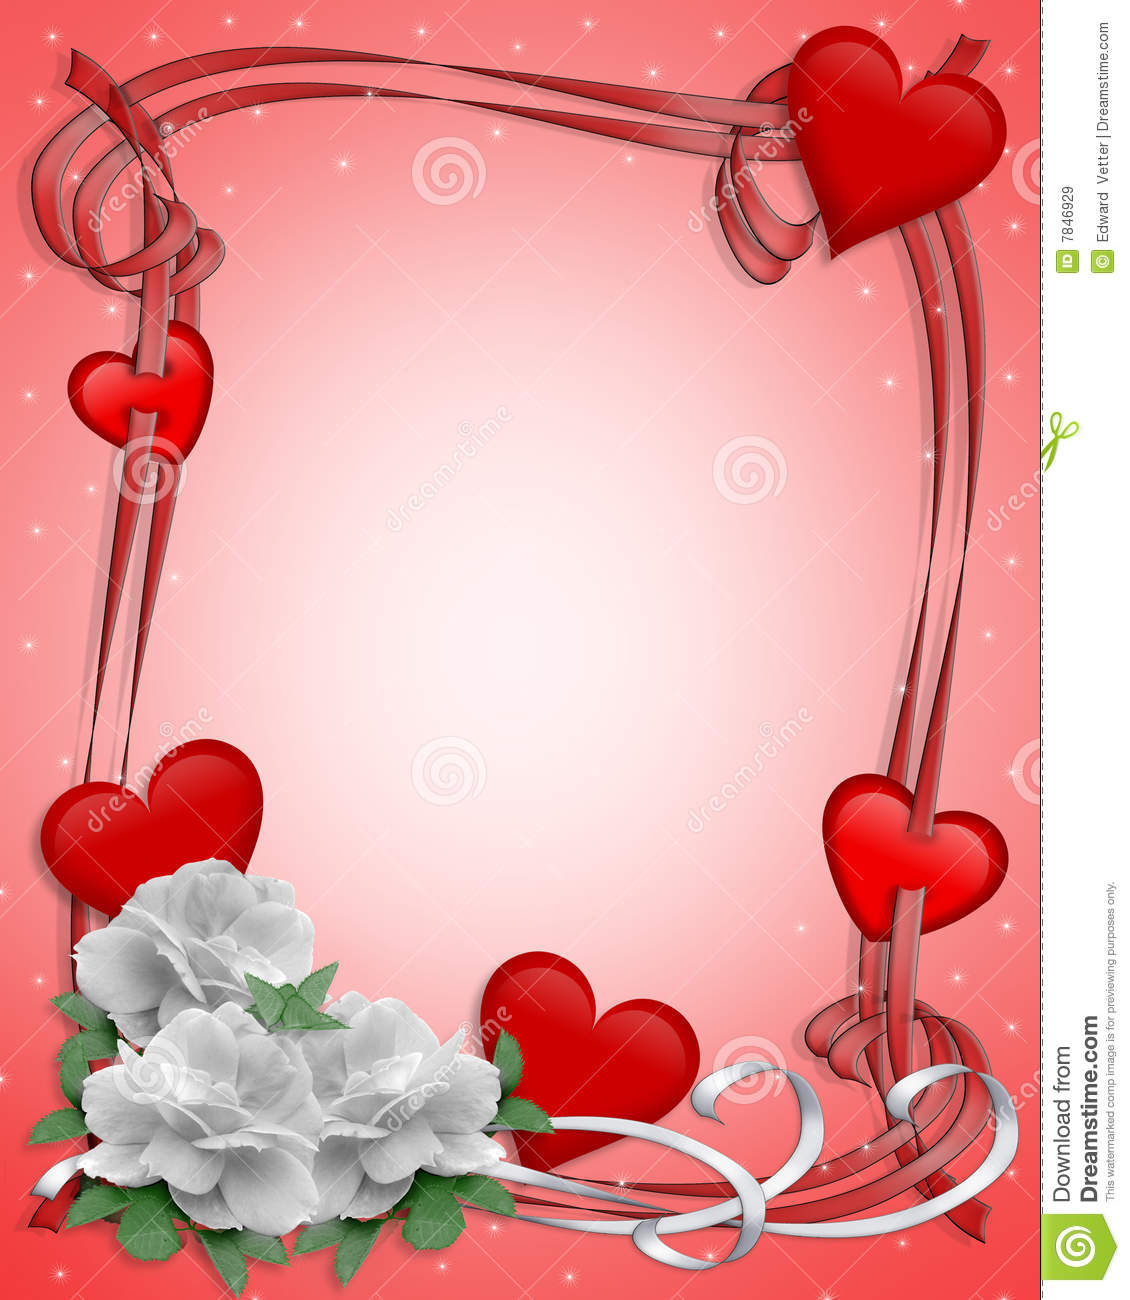 heart floral frame valentine - photo #18